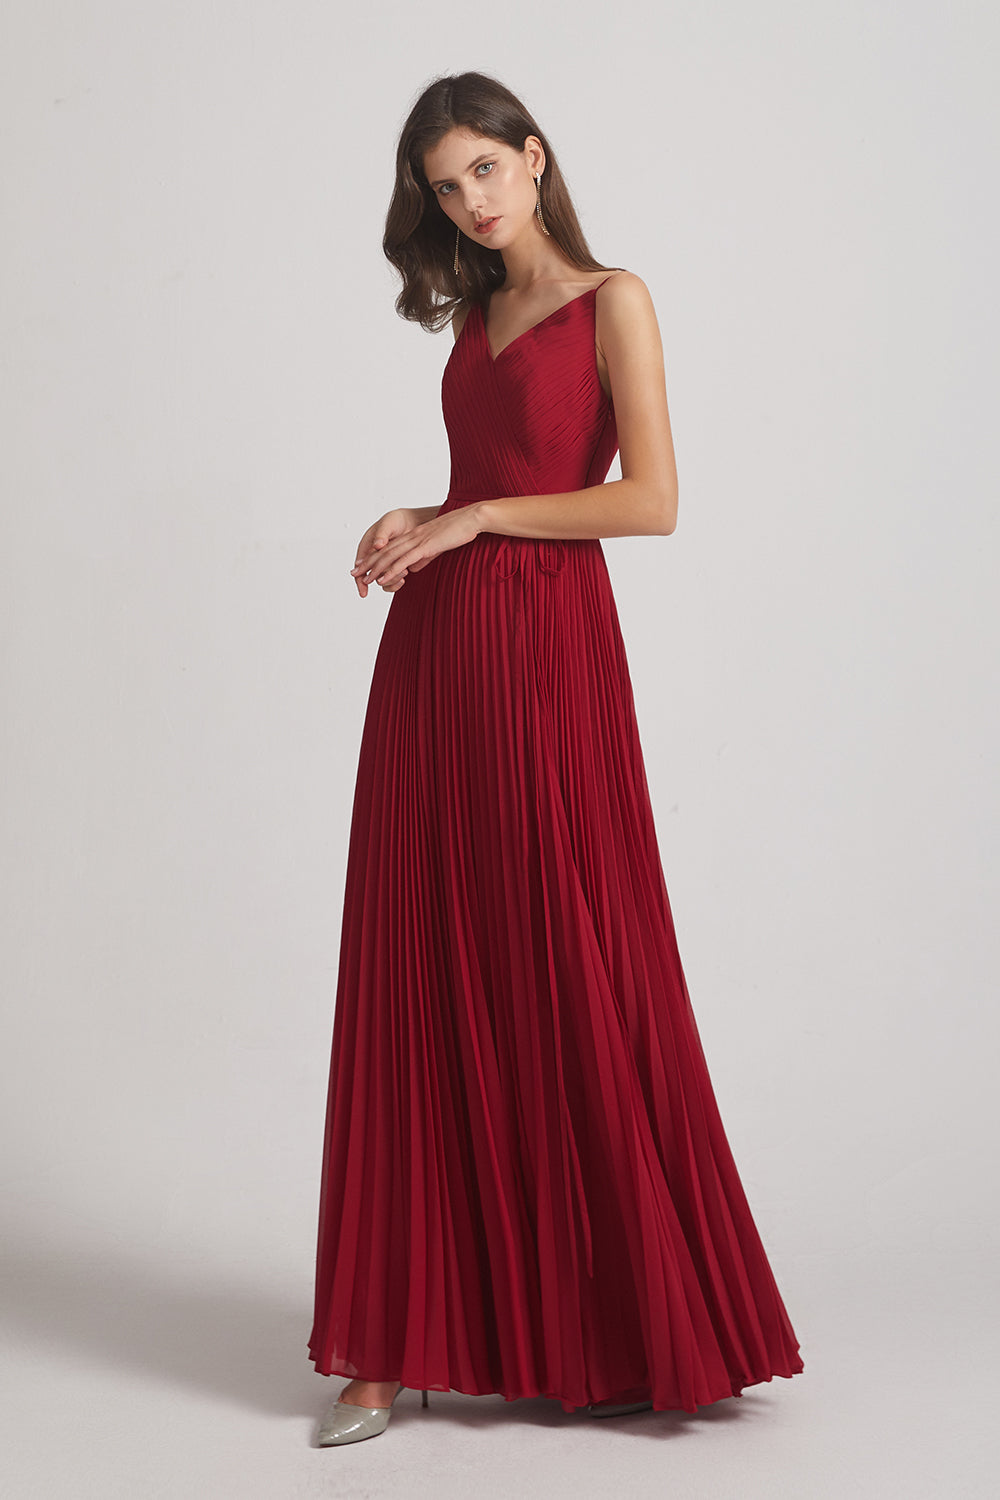 luxurious v neck long bridesmaid gown